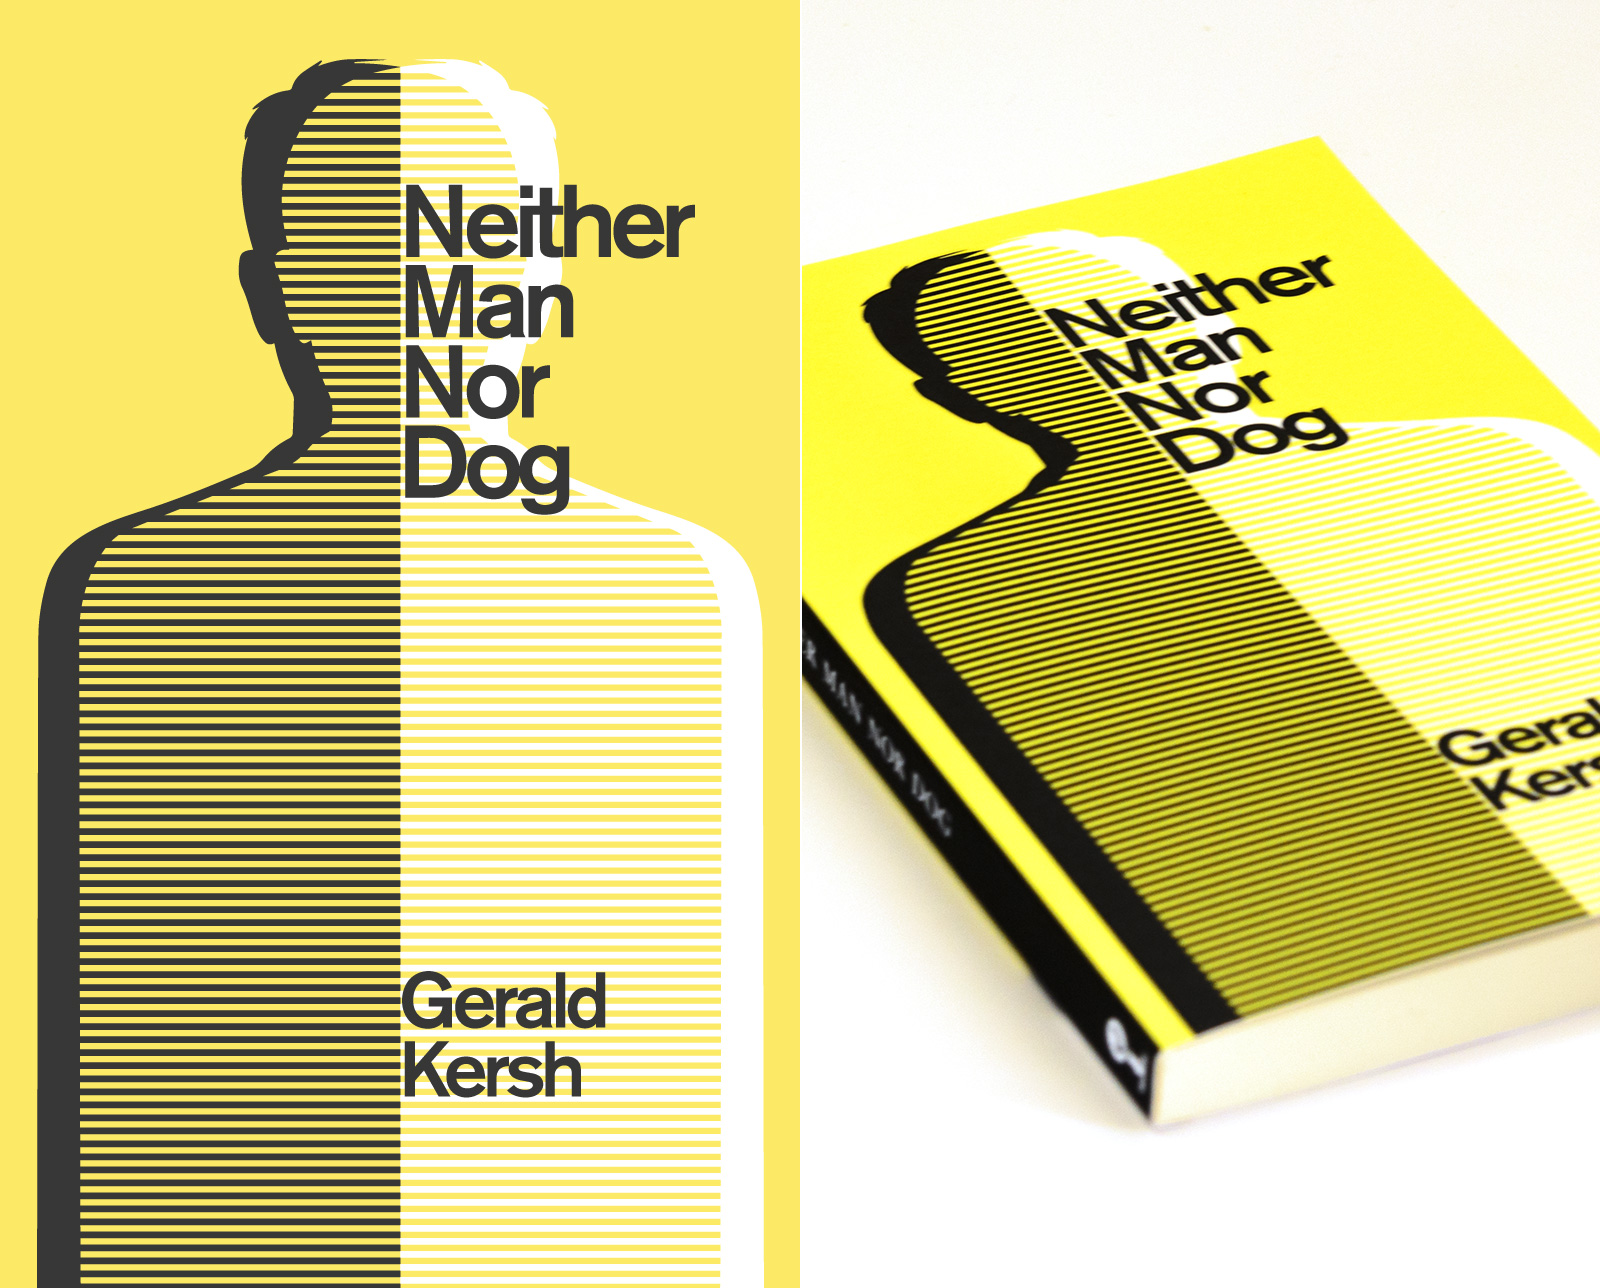 Neither Man Nor Dog by Gerald Kersh